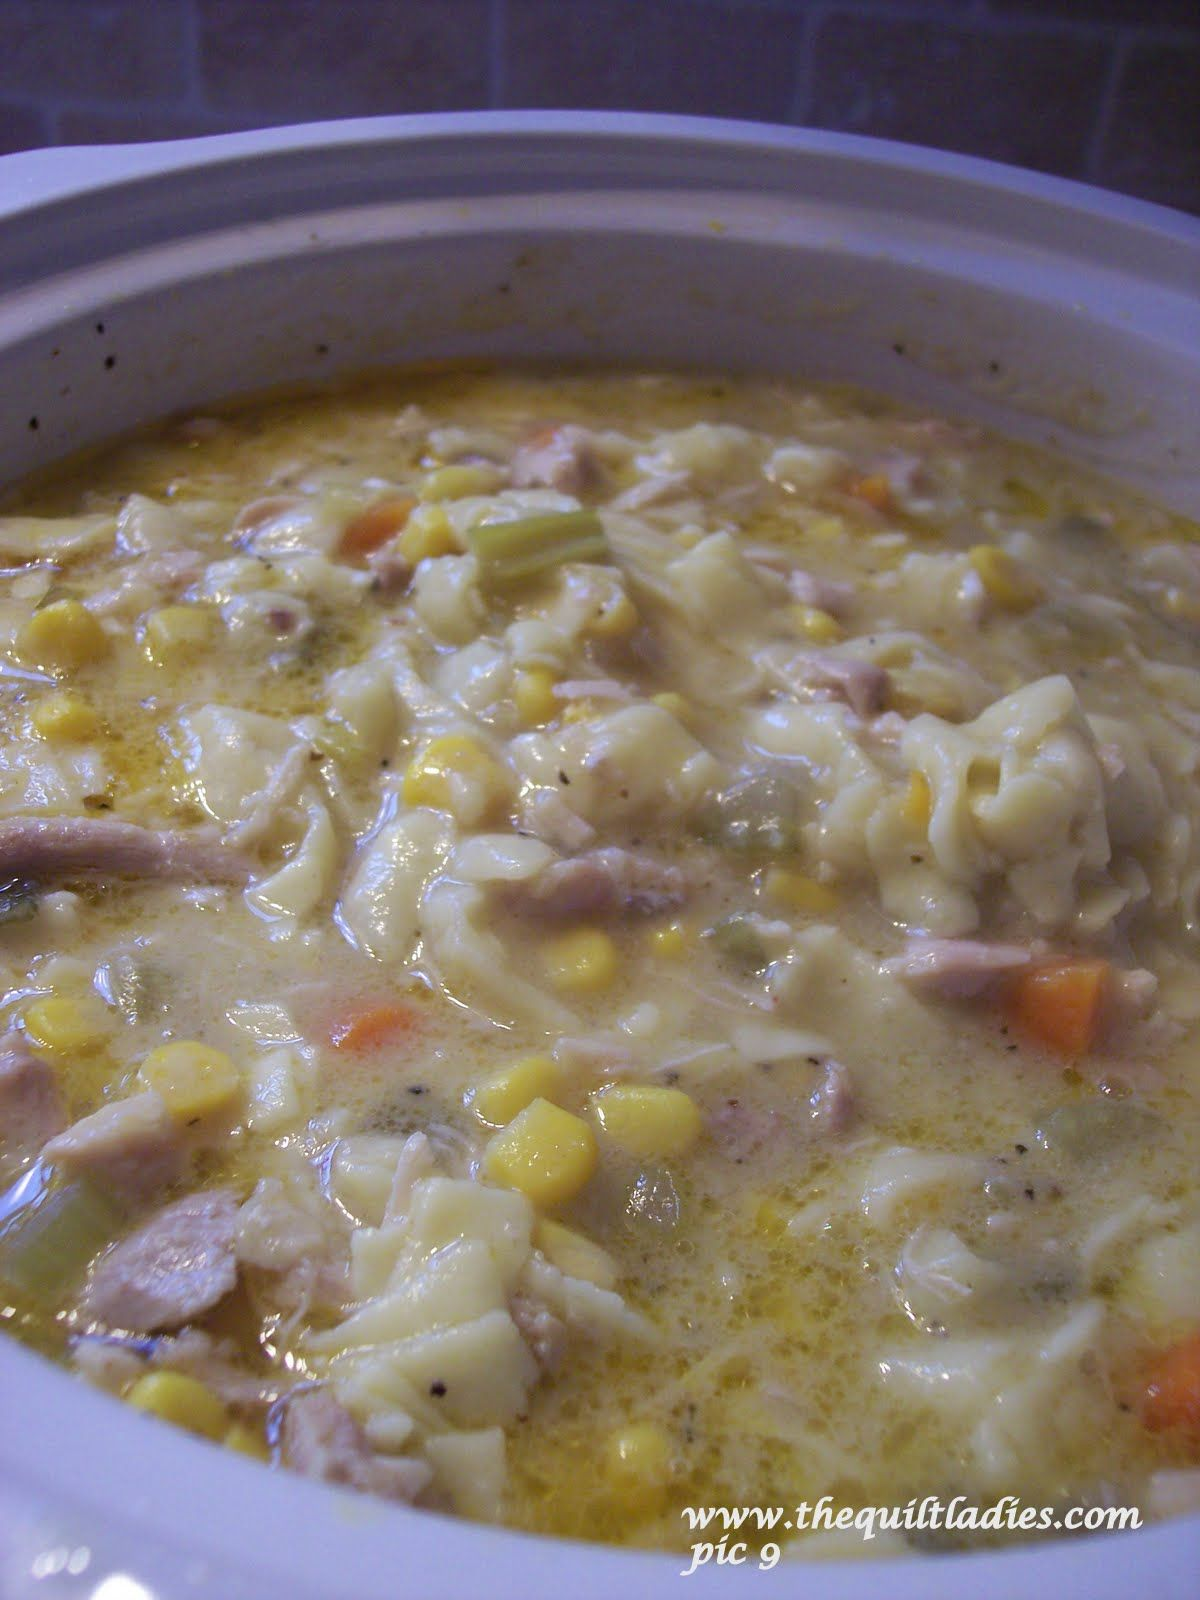 This would be awesome after a cold day....Crock Pot Chicken and Noodle Soup